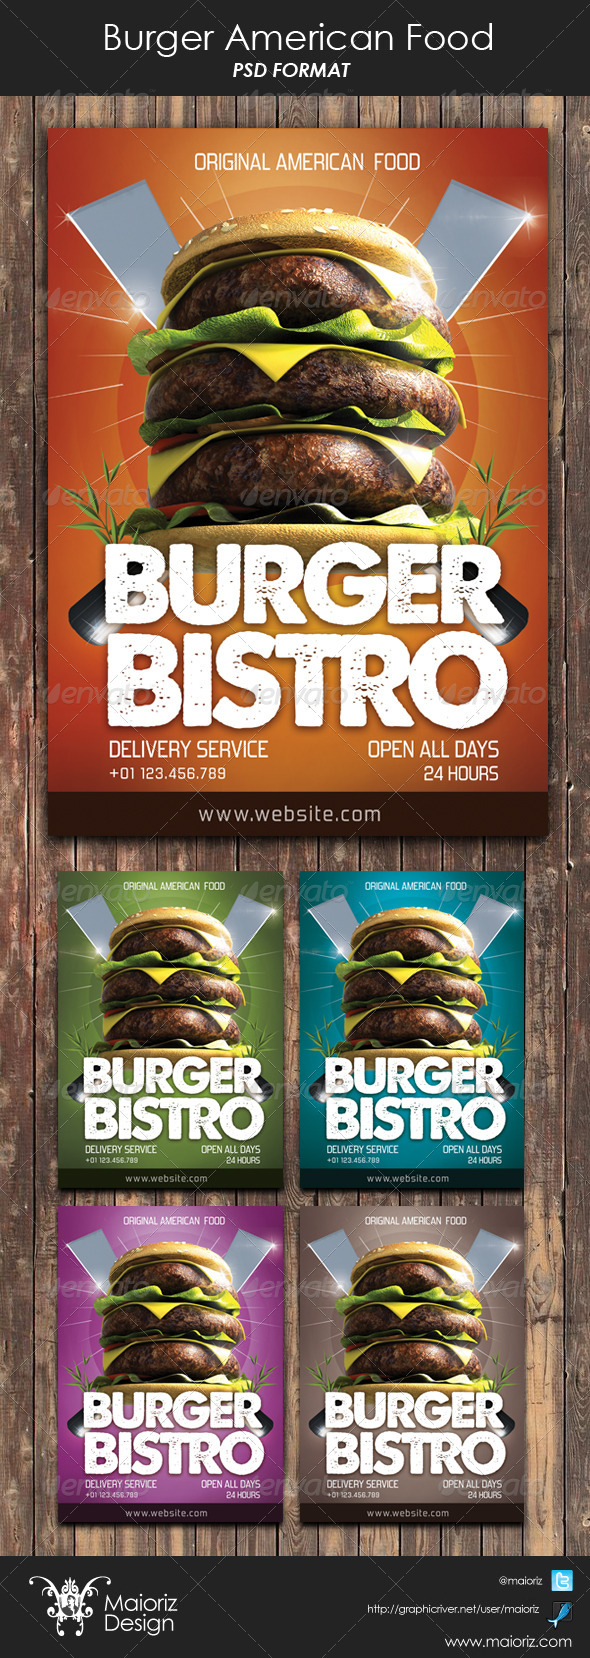 GraphicRiver Burger American Food Flyer 6043499